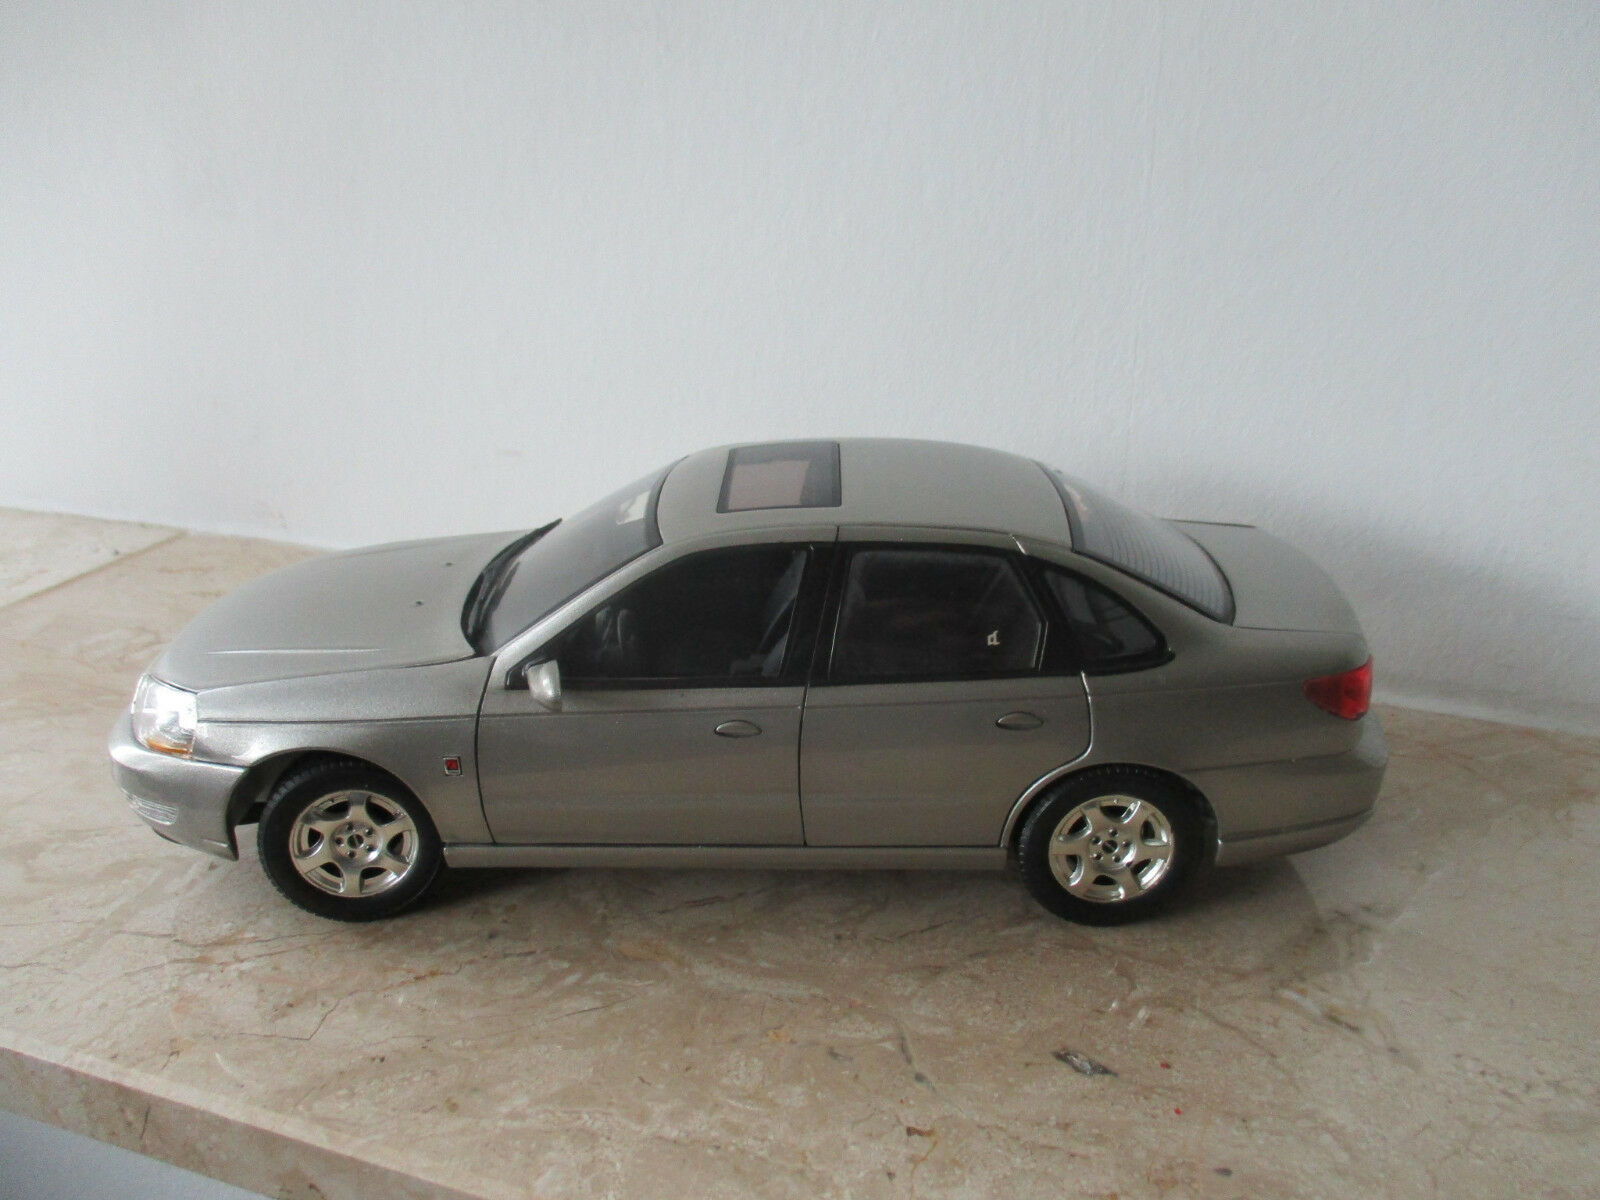 Modelllauto Die-Cast Promotion 2003 L300 Maßstab 1 18 ohne OVP